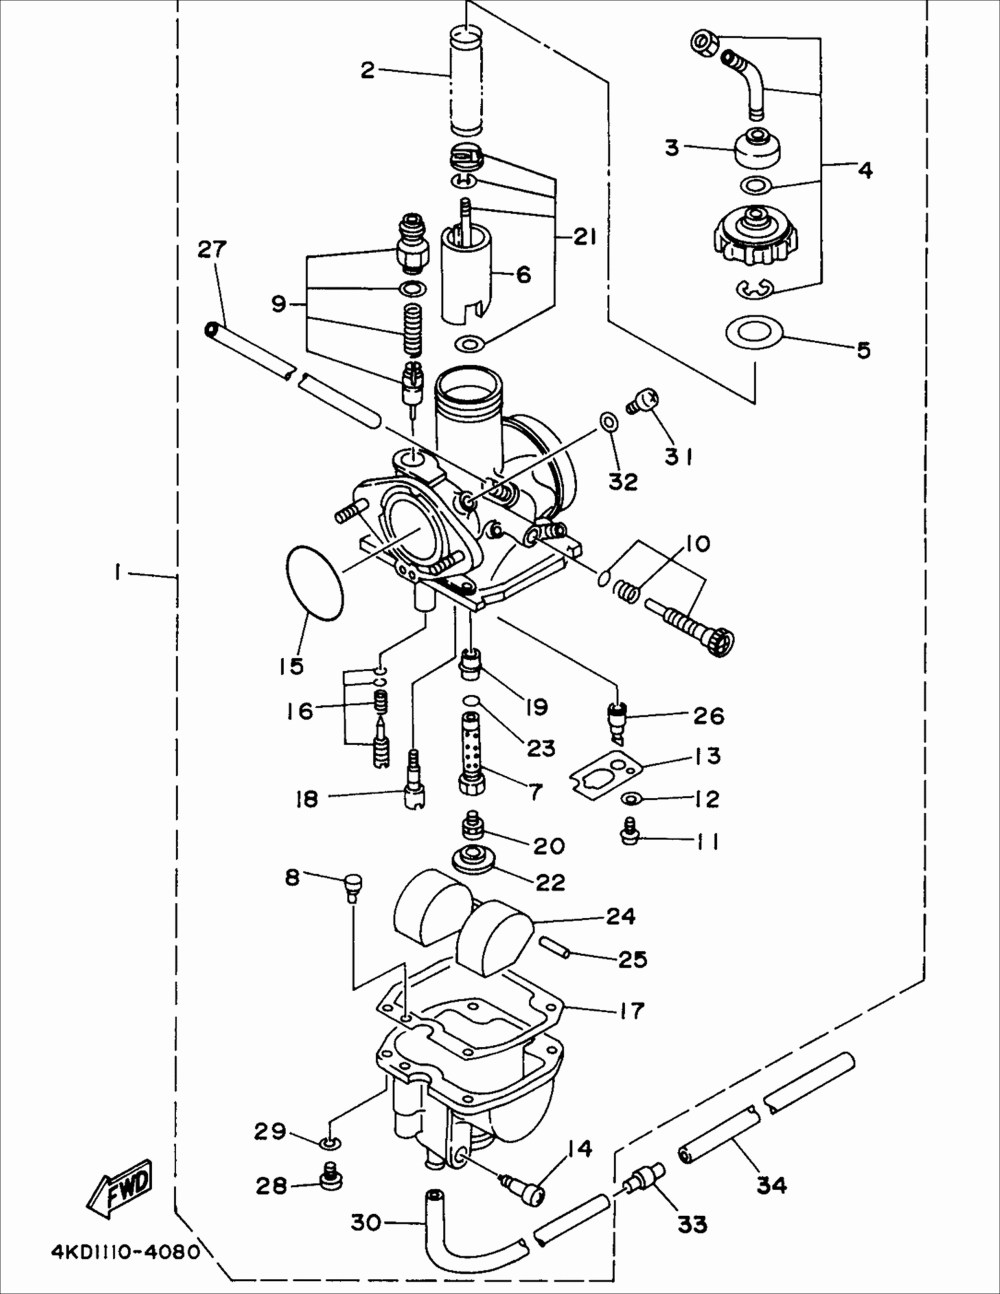 medium resolution of 1995 mitsubishi mirage ls engine diagram wiring library 2002 mitsubishi eclipse wiring diagram 1995 mitsubishi mirage